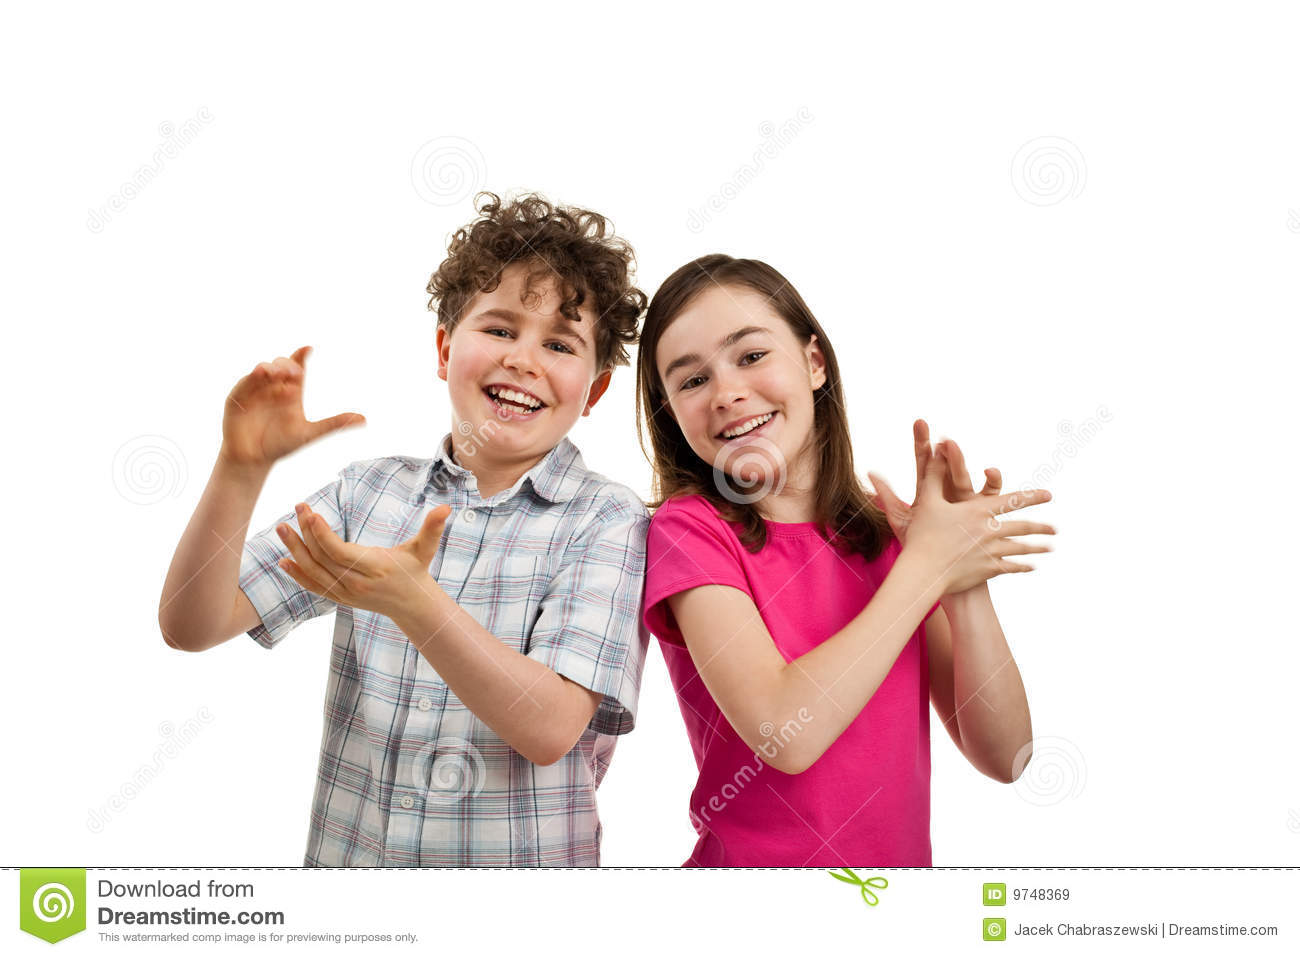 Kids clapping